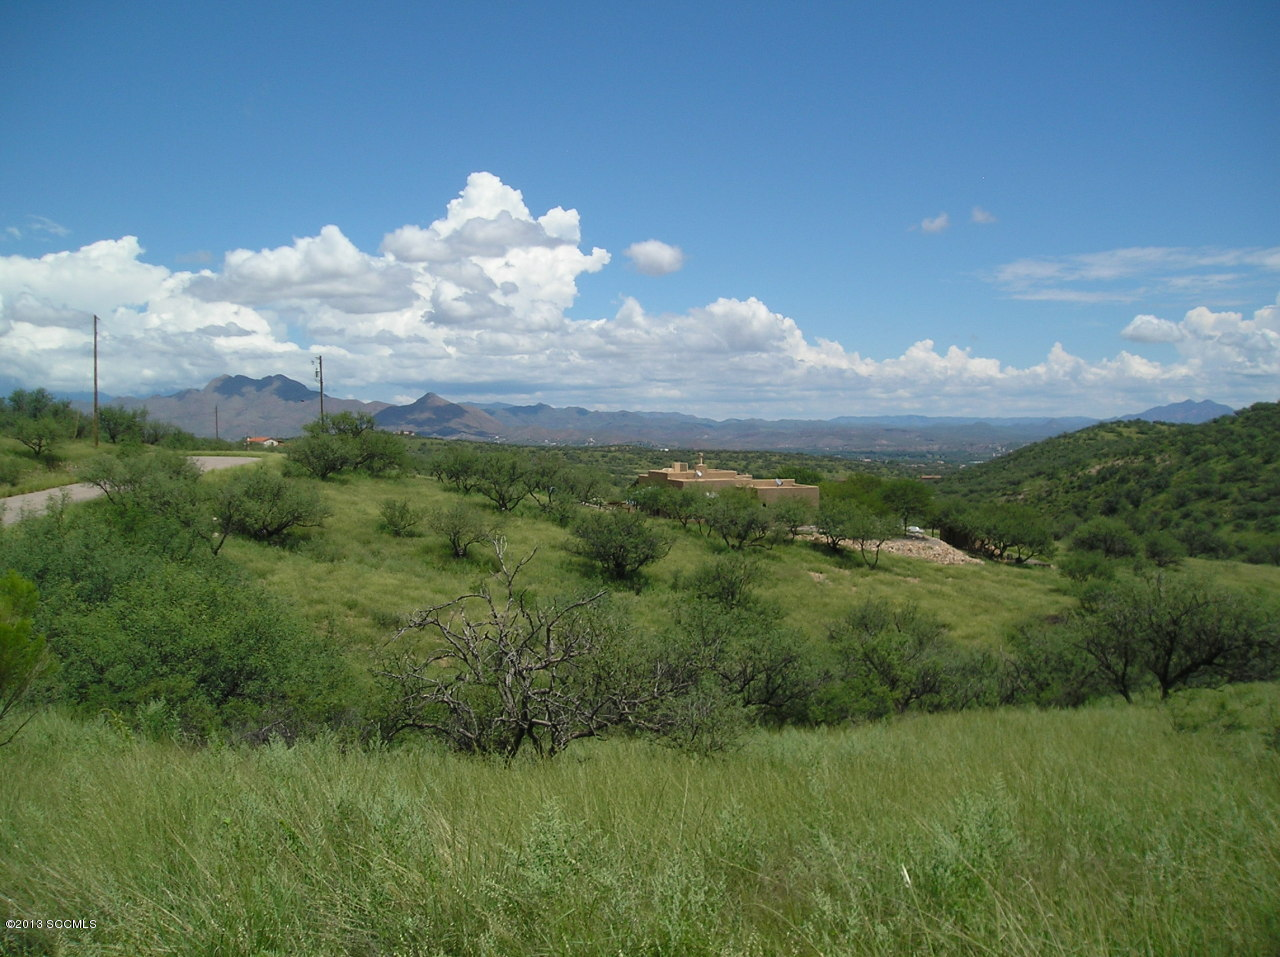 2.64 acres in Rio Rico, Arizona